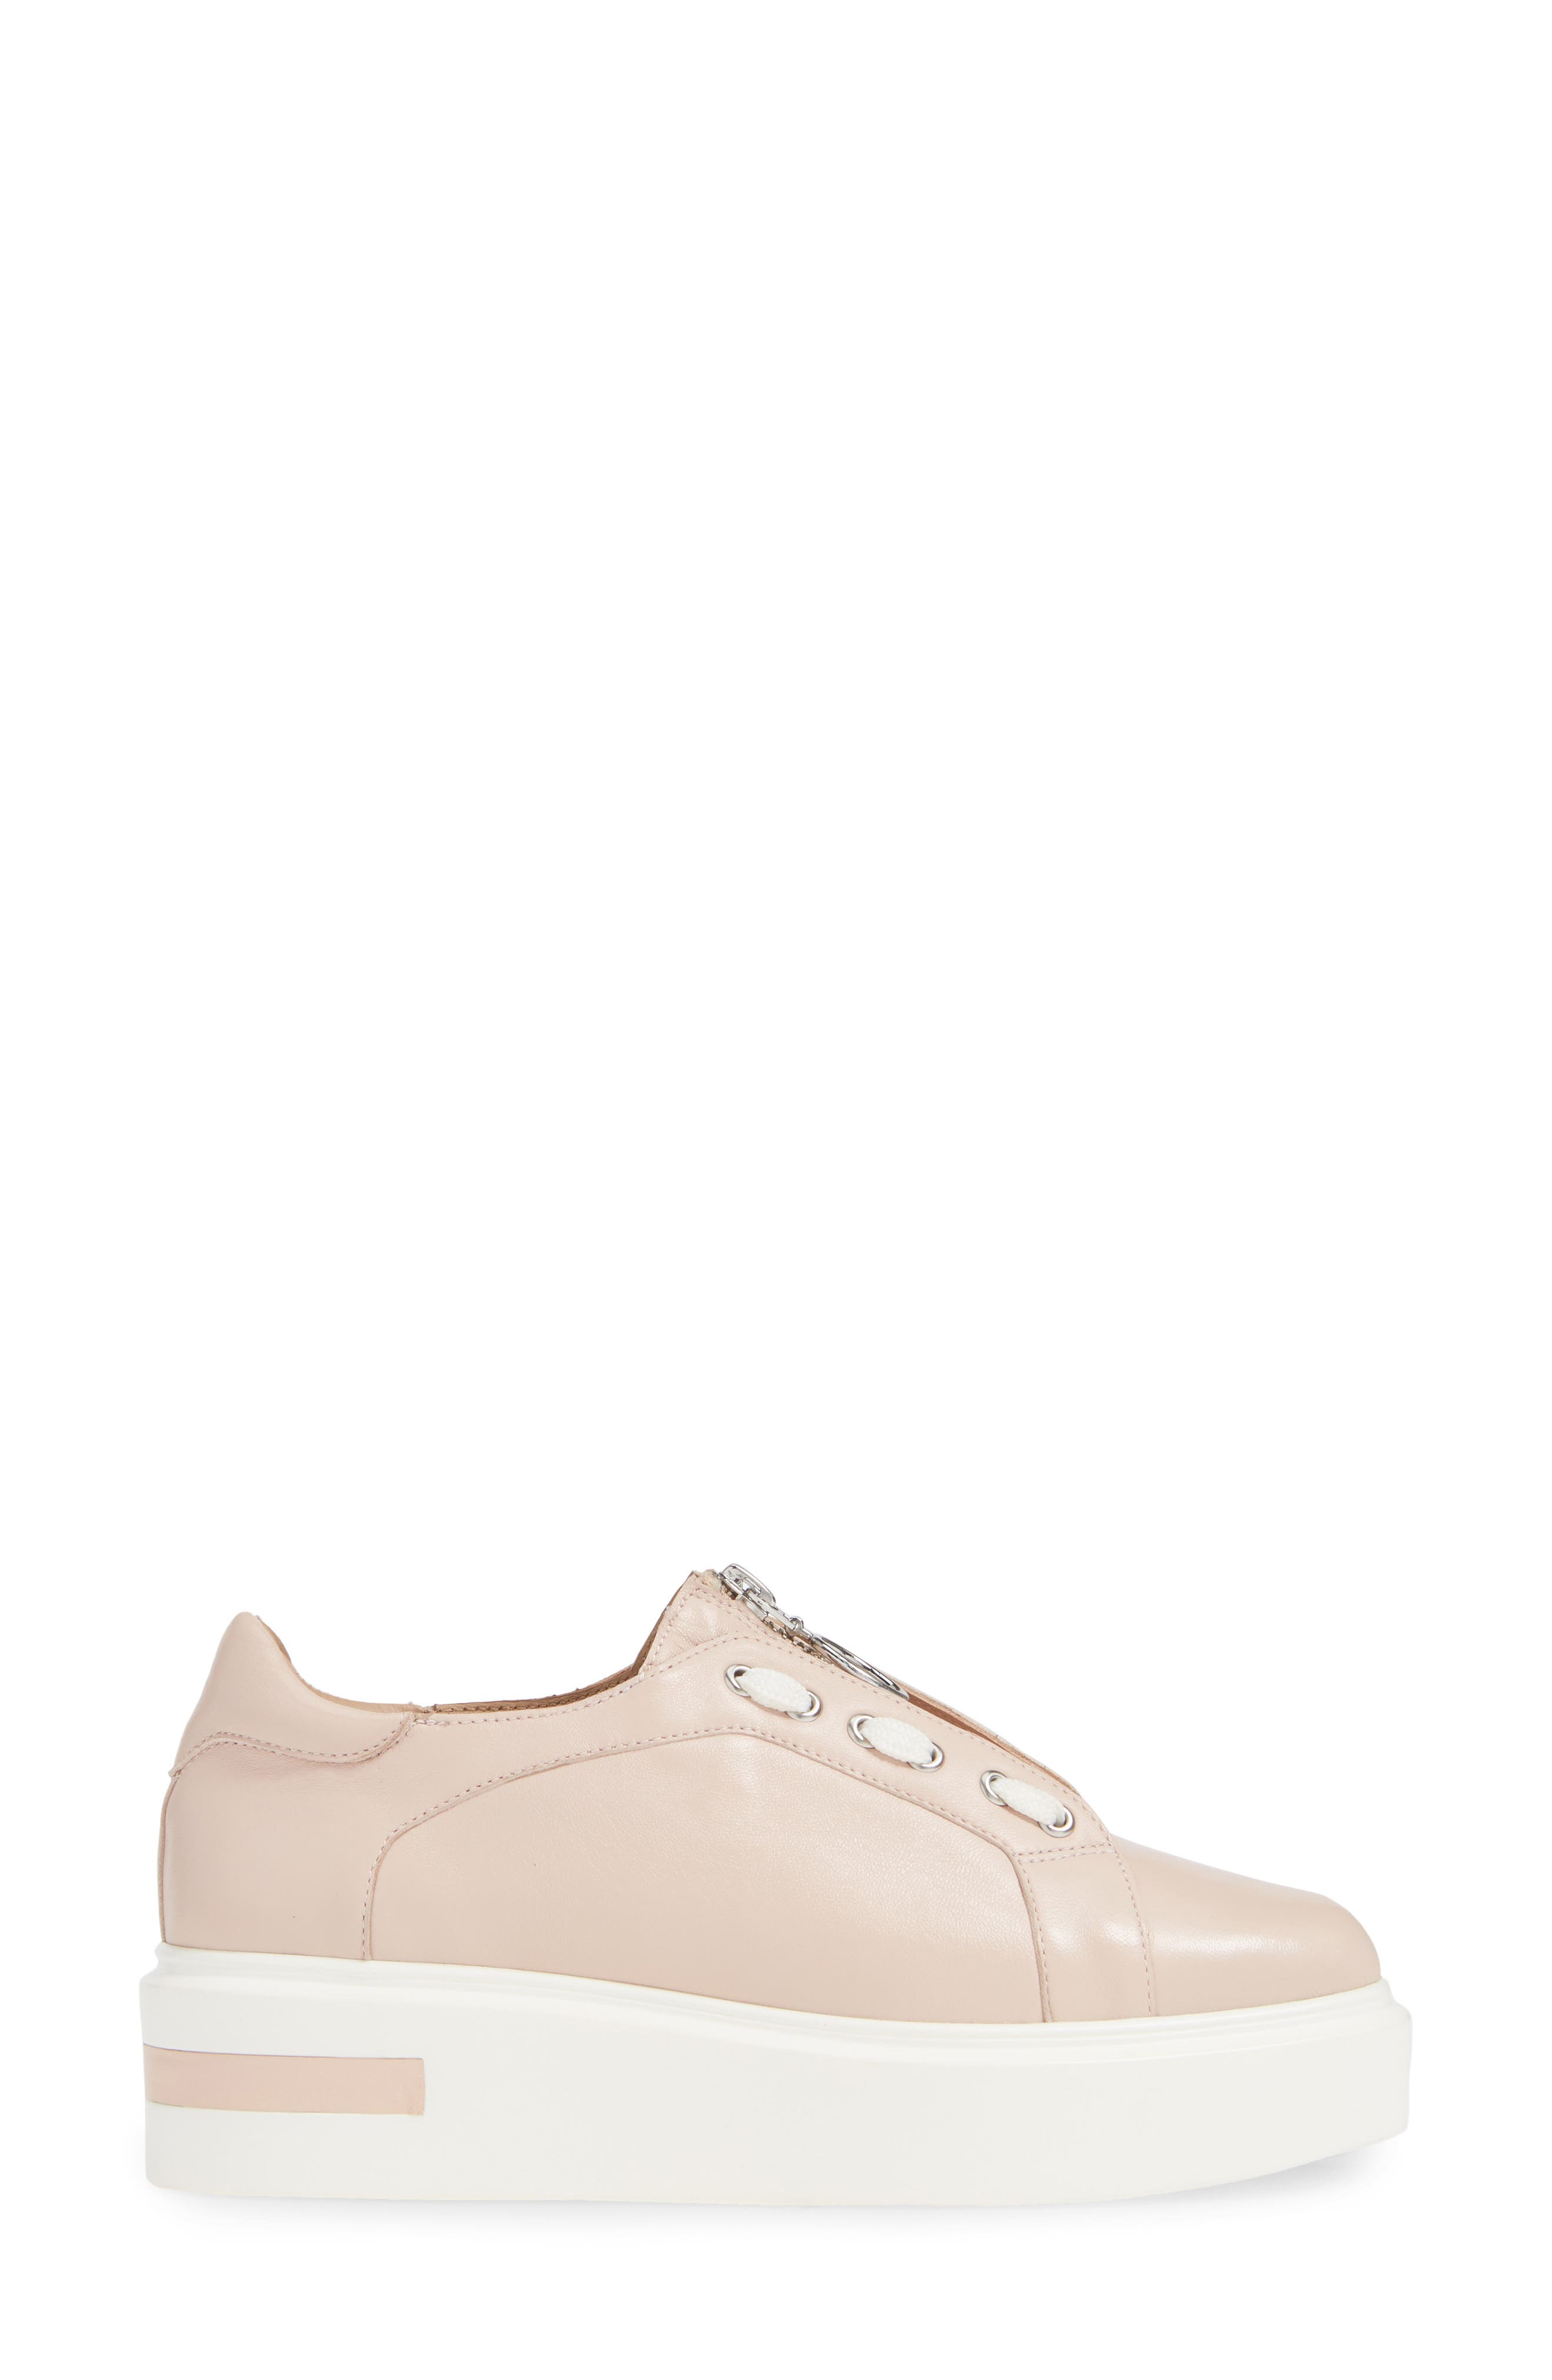 LINEA PAOLO,                             Killian Platform Sneaker,                             Alternate thumbnail 3, color,                             BLUSH LEATHER